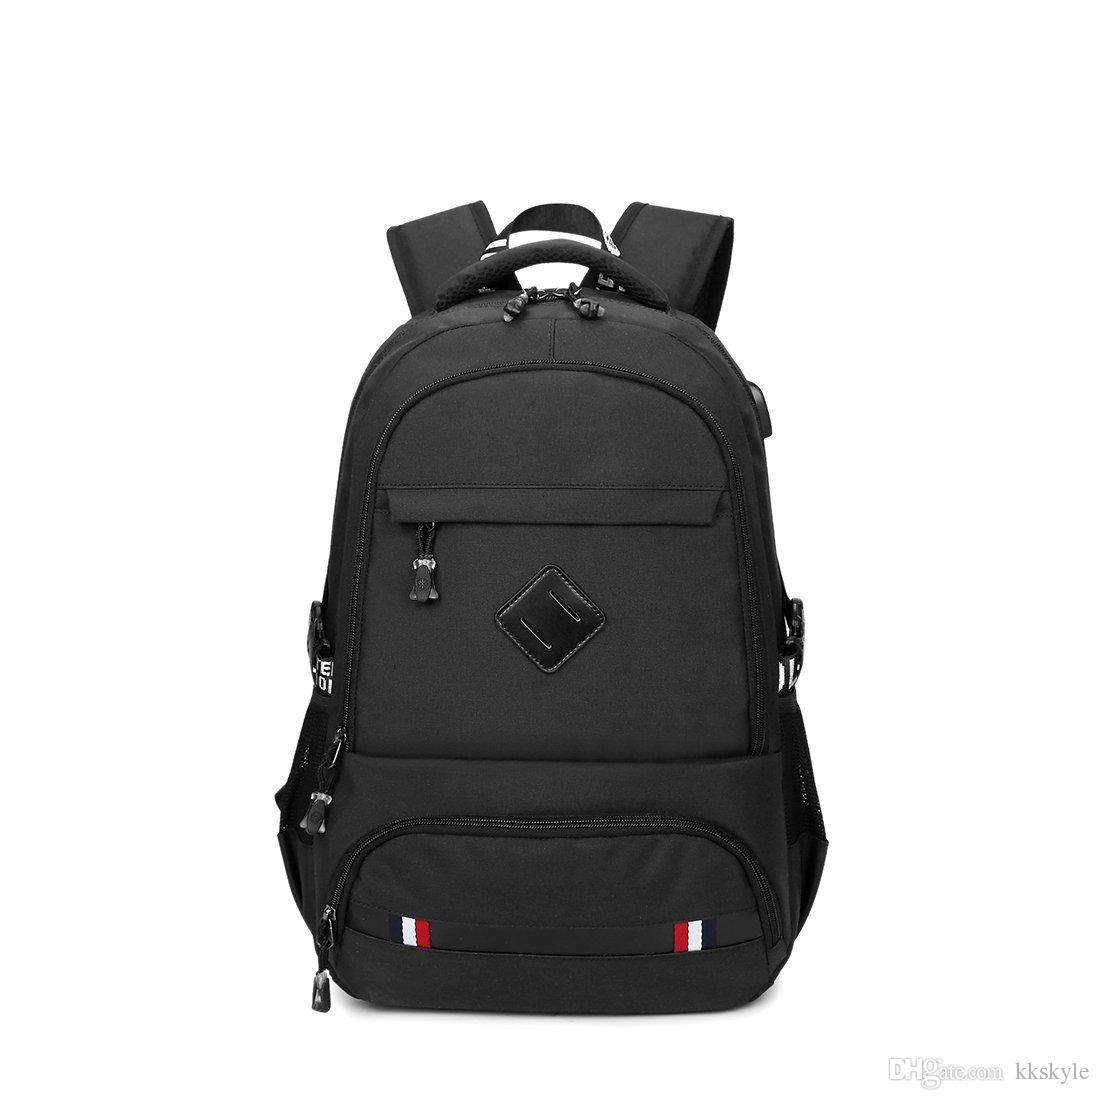 Business Water Resistant Polyester Laptop Backpack,Casual Schoolbag for Men with USB Charging Port for 15.6 inch Laptop & Notebook